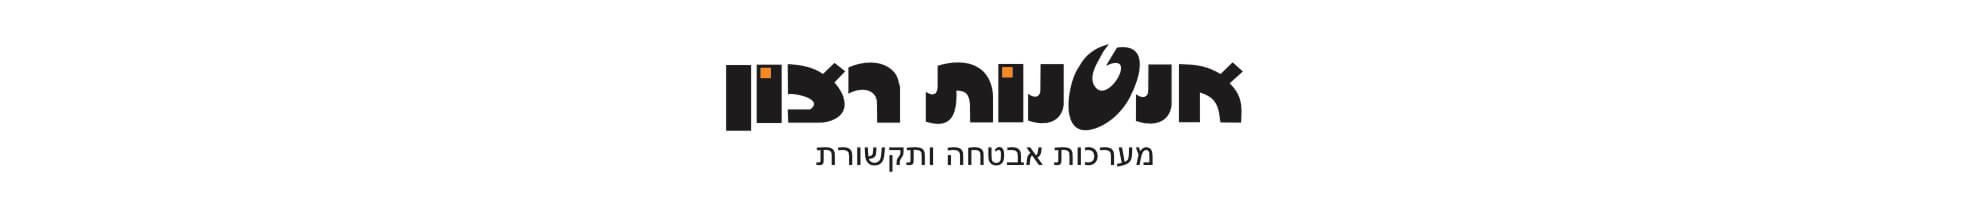 אנטנות רצון – מערכות אבטחה ותקשורת